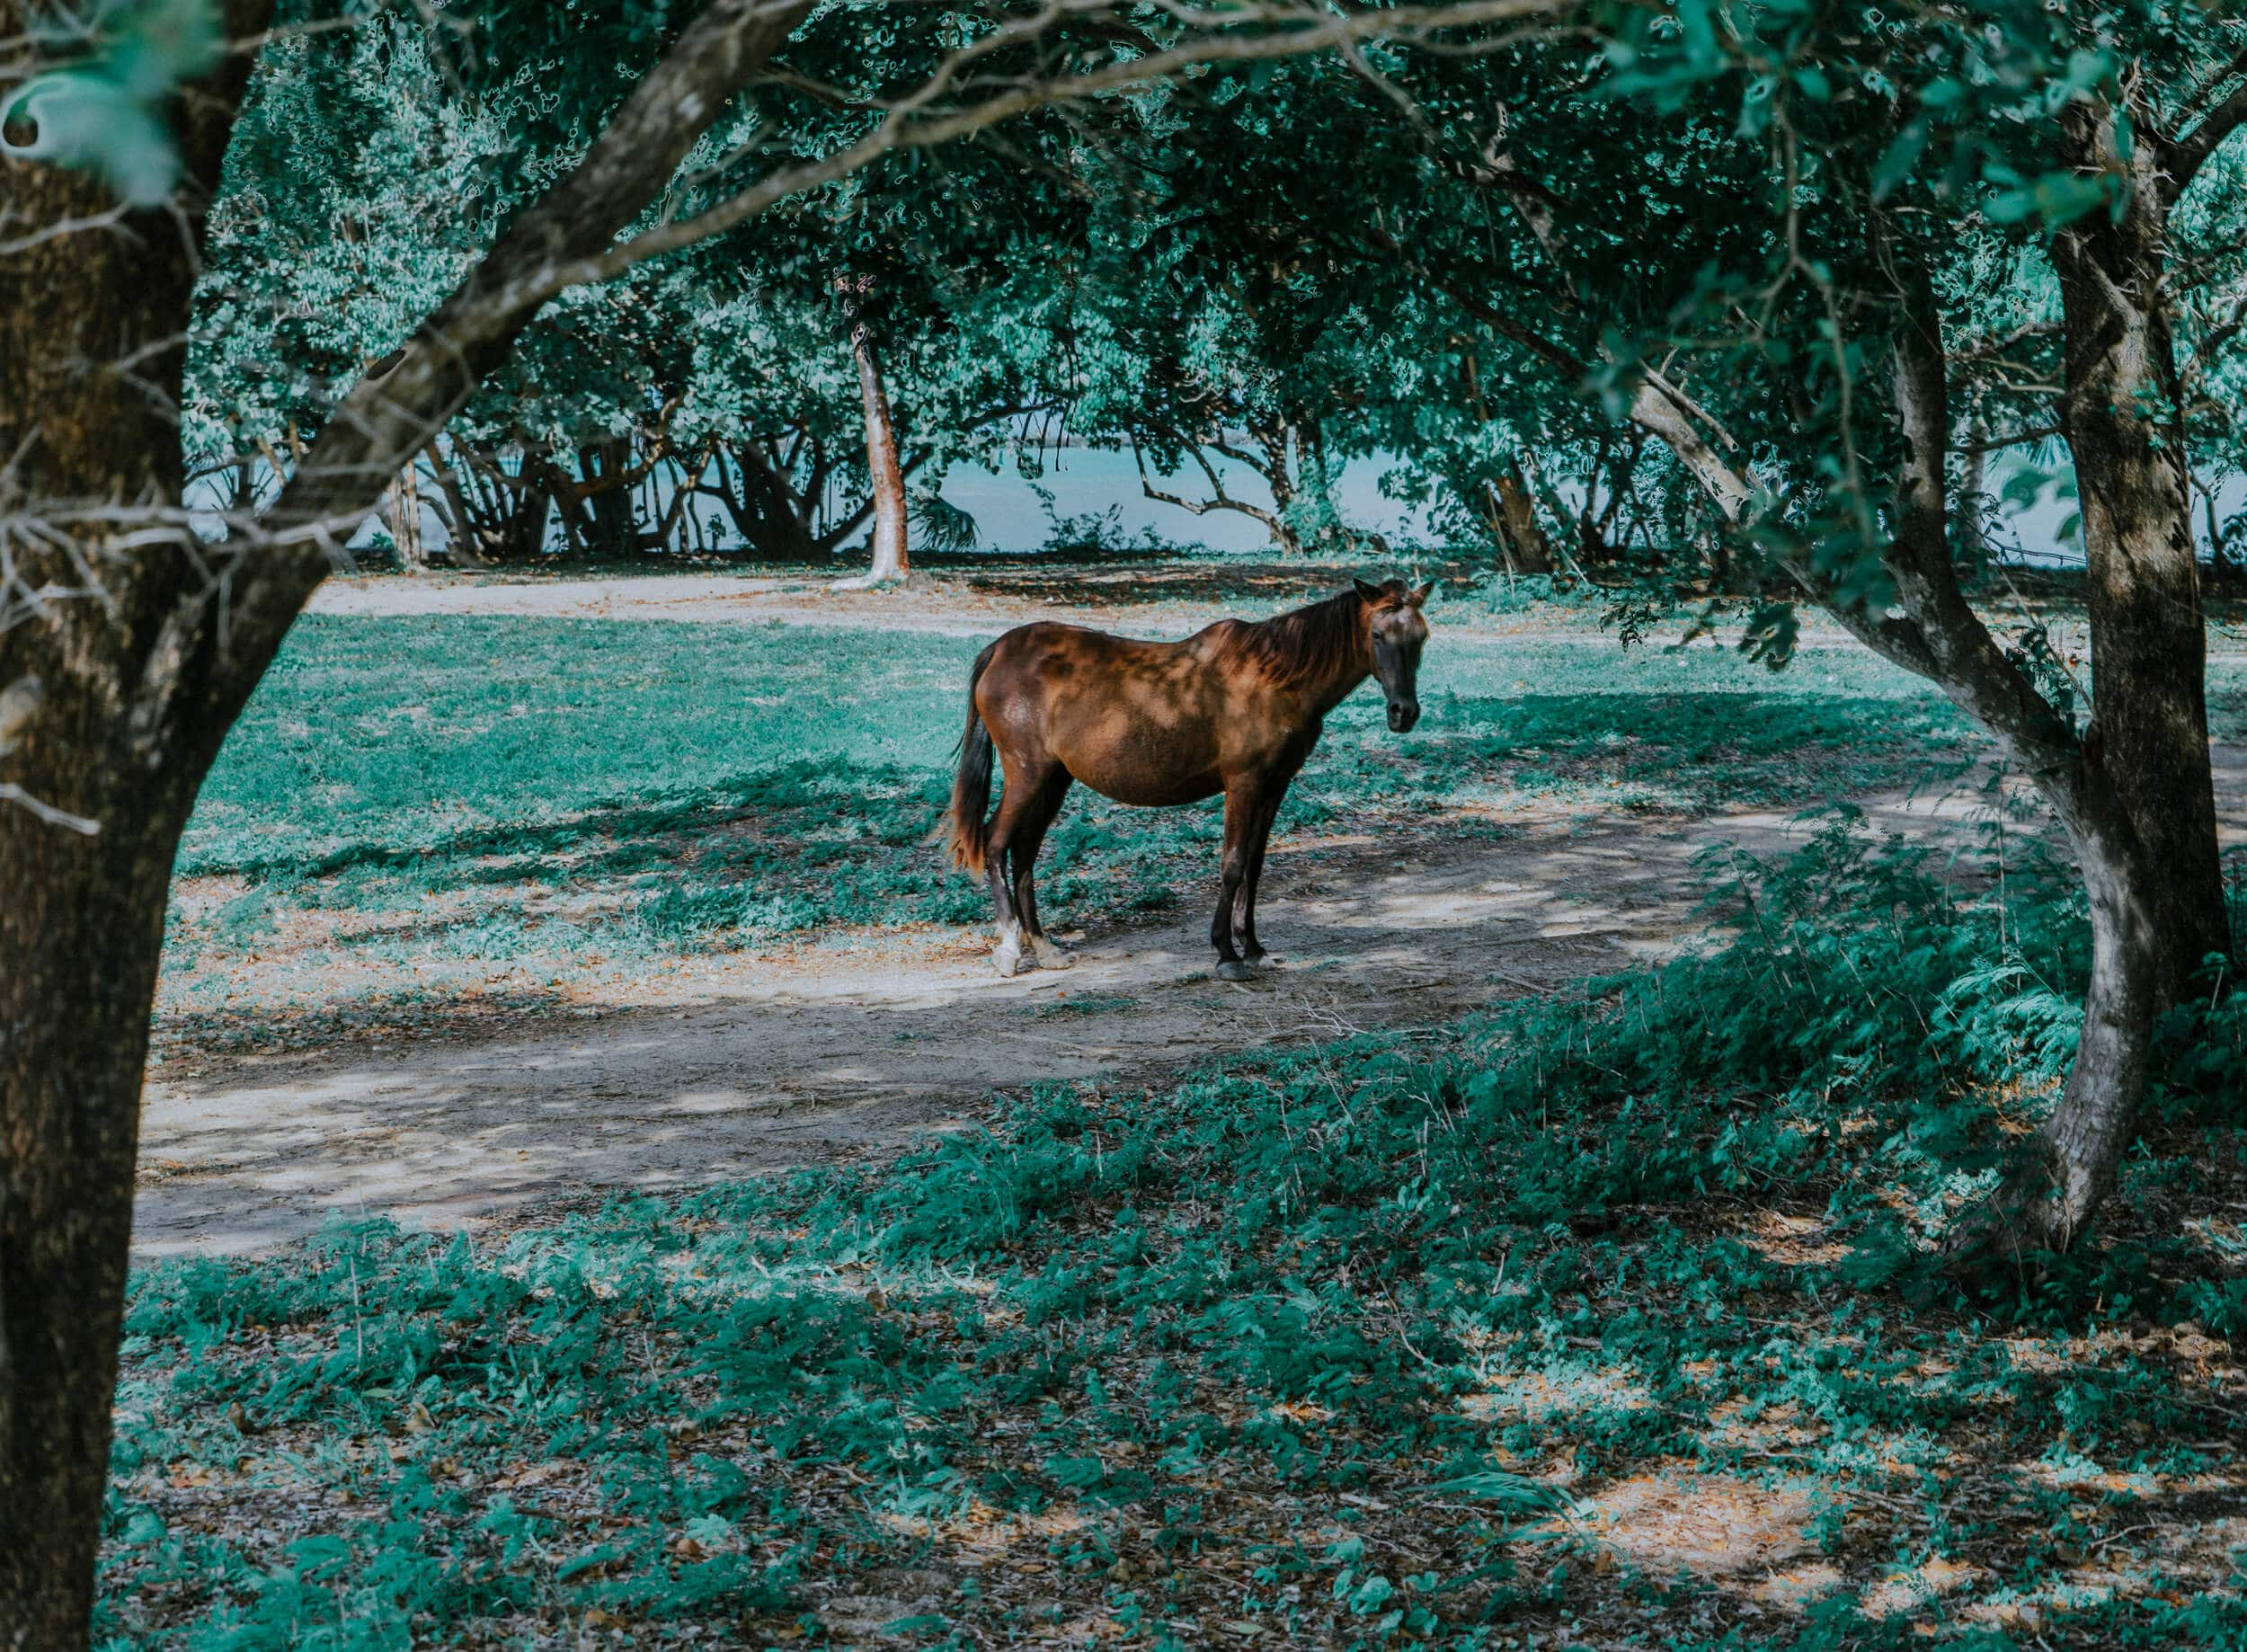 Photograph of a wild horse in Vieques, Puerto Rico.